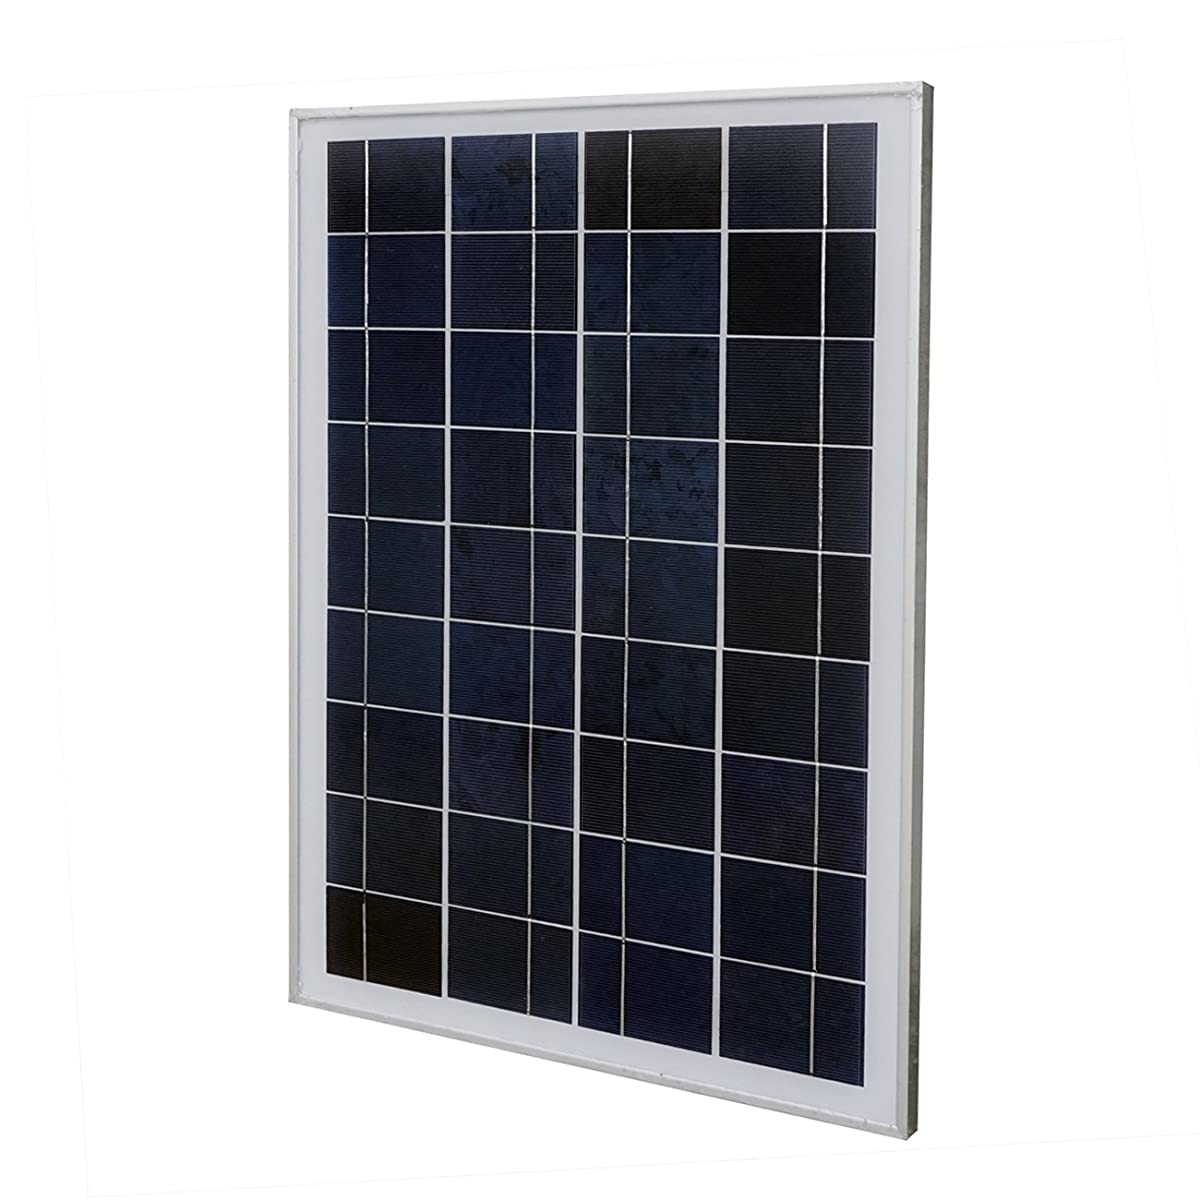 20 Watt 12 Volt Polycrystalline Solar Panel Module Off Grid Charging RV Boat